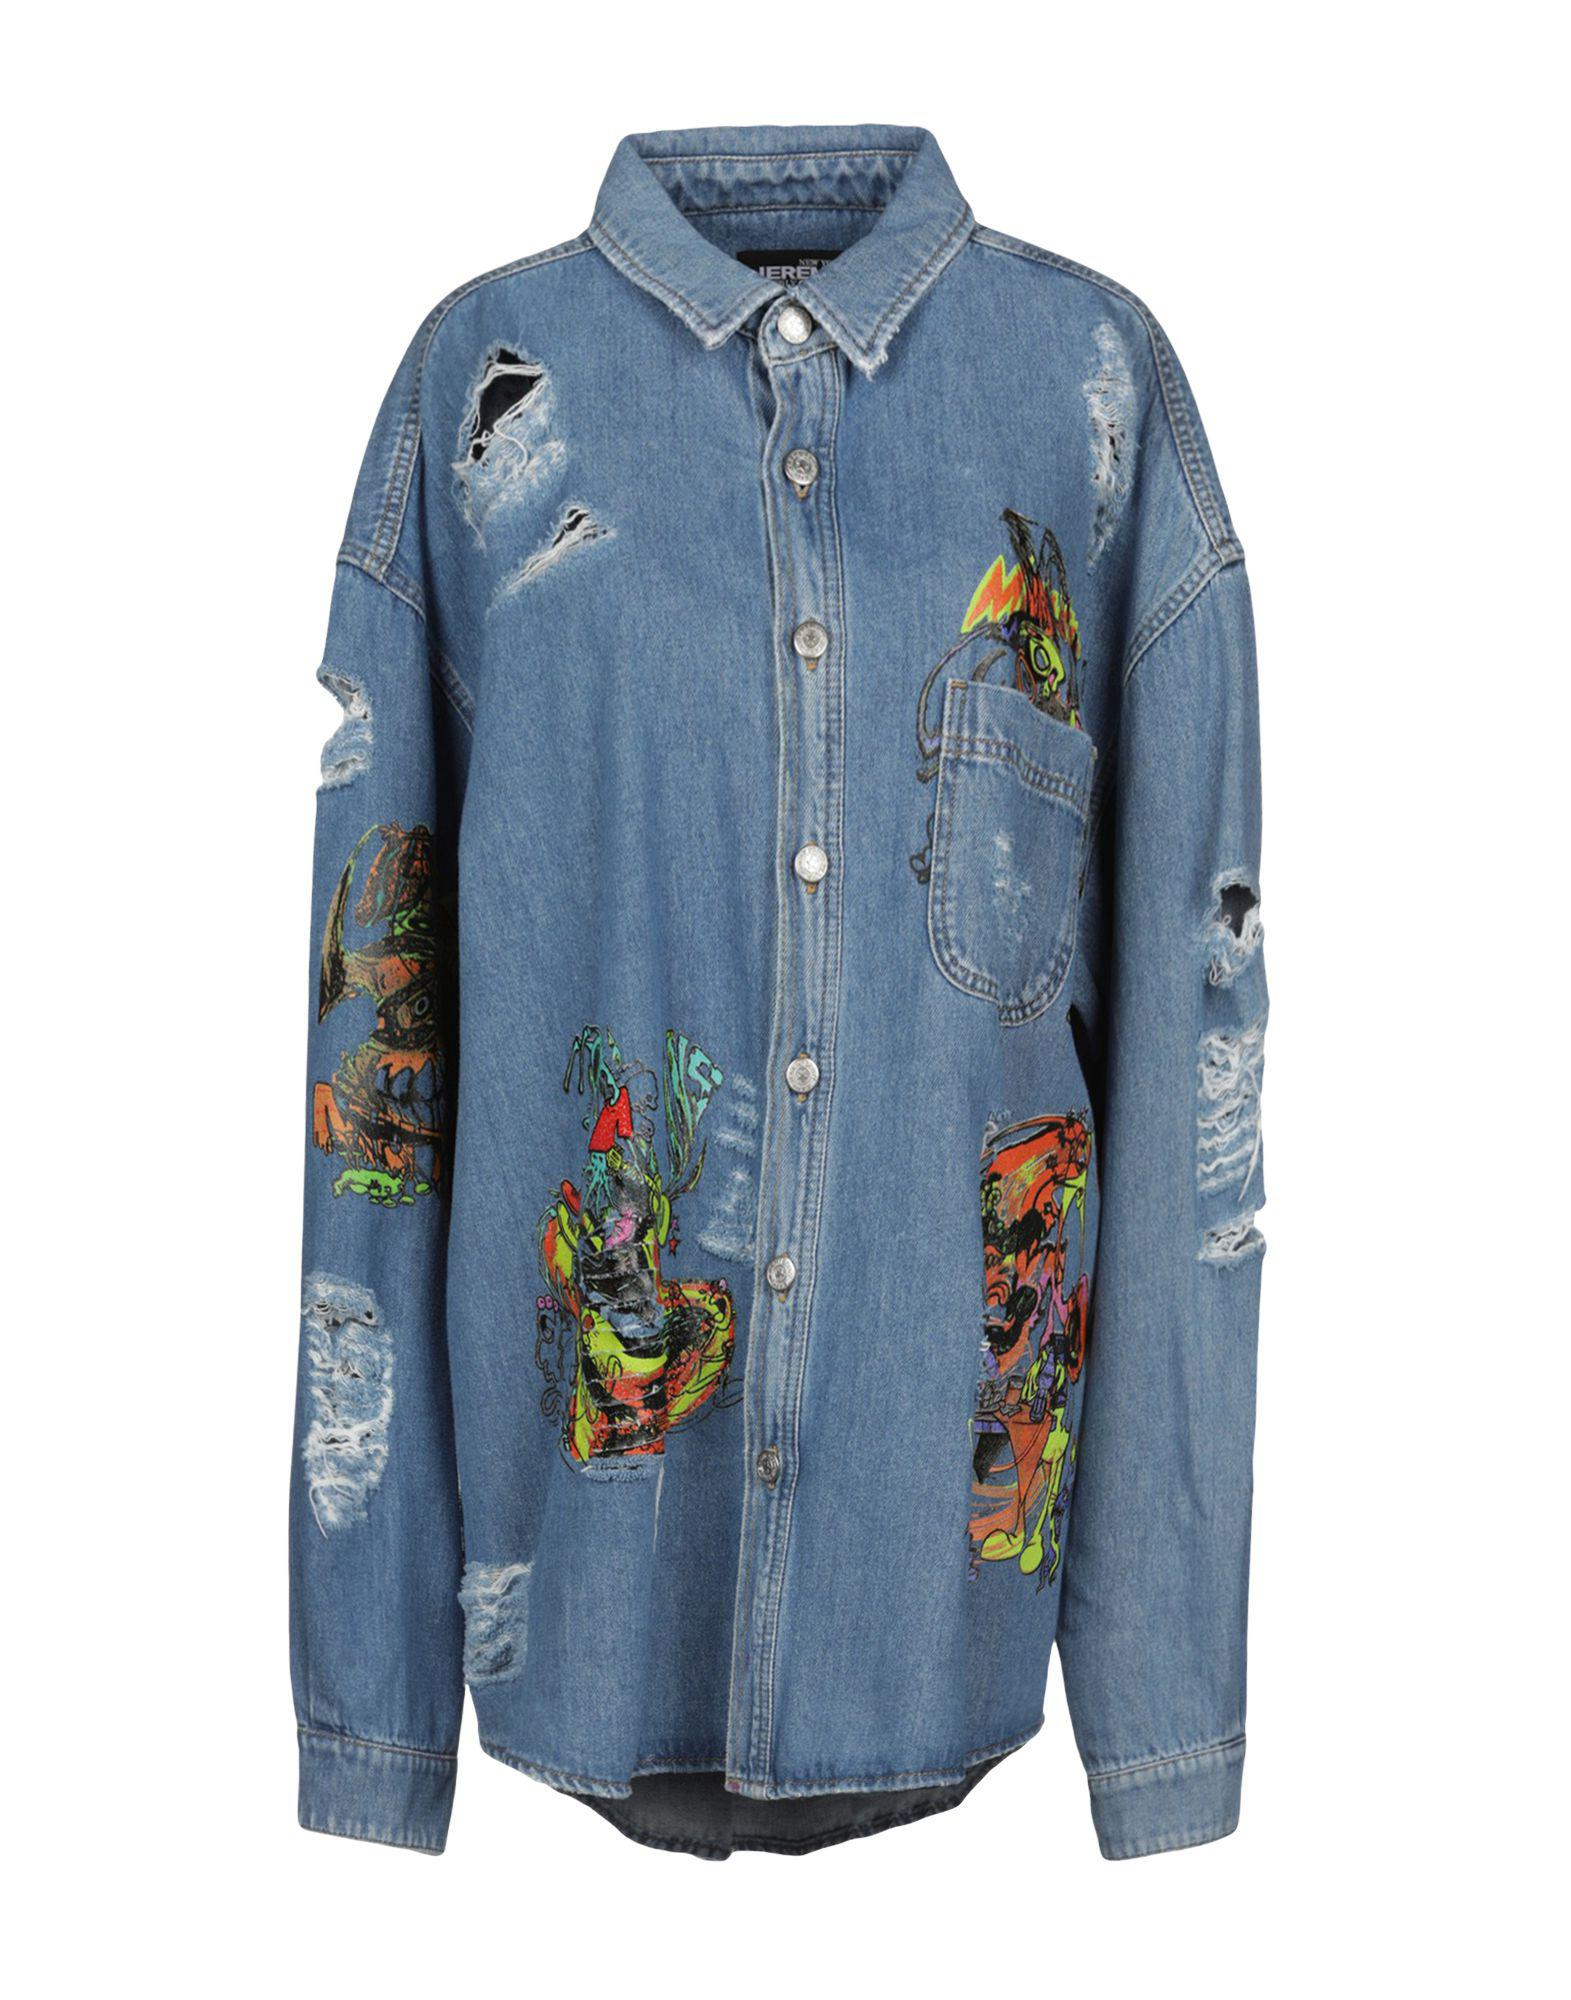 86bb5533f2b3 Jeremy Scott Denim Outerwear in Blue - Lyst